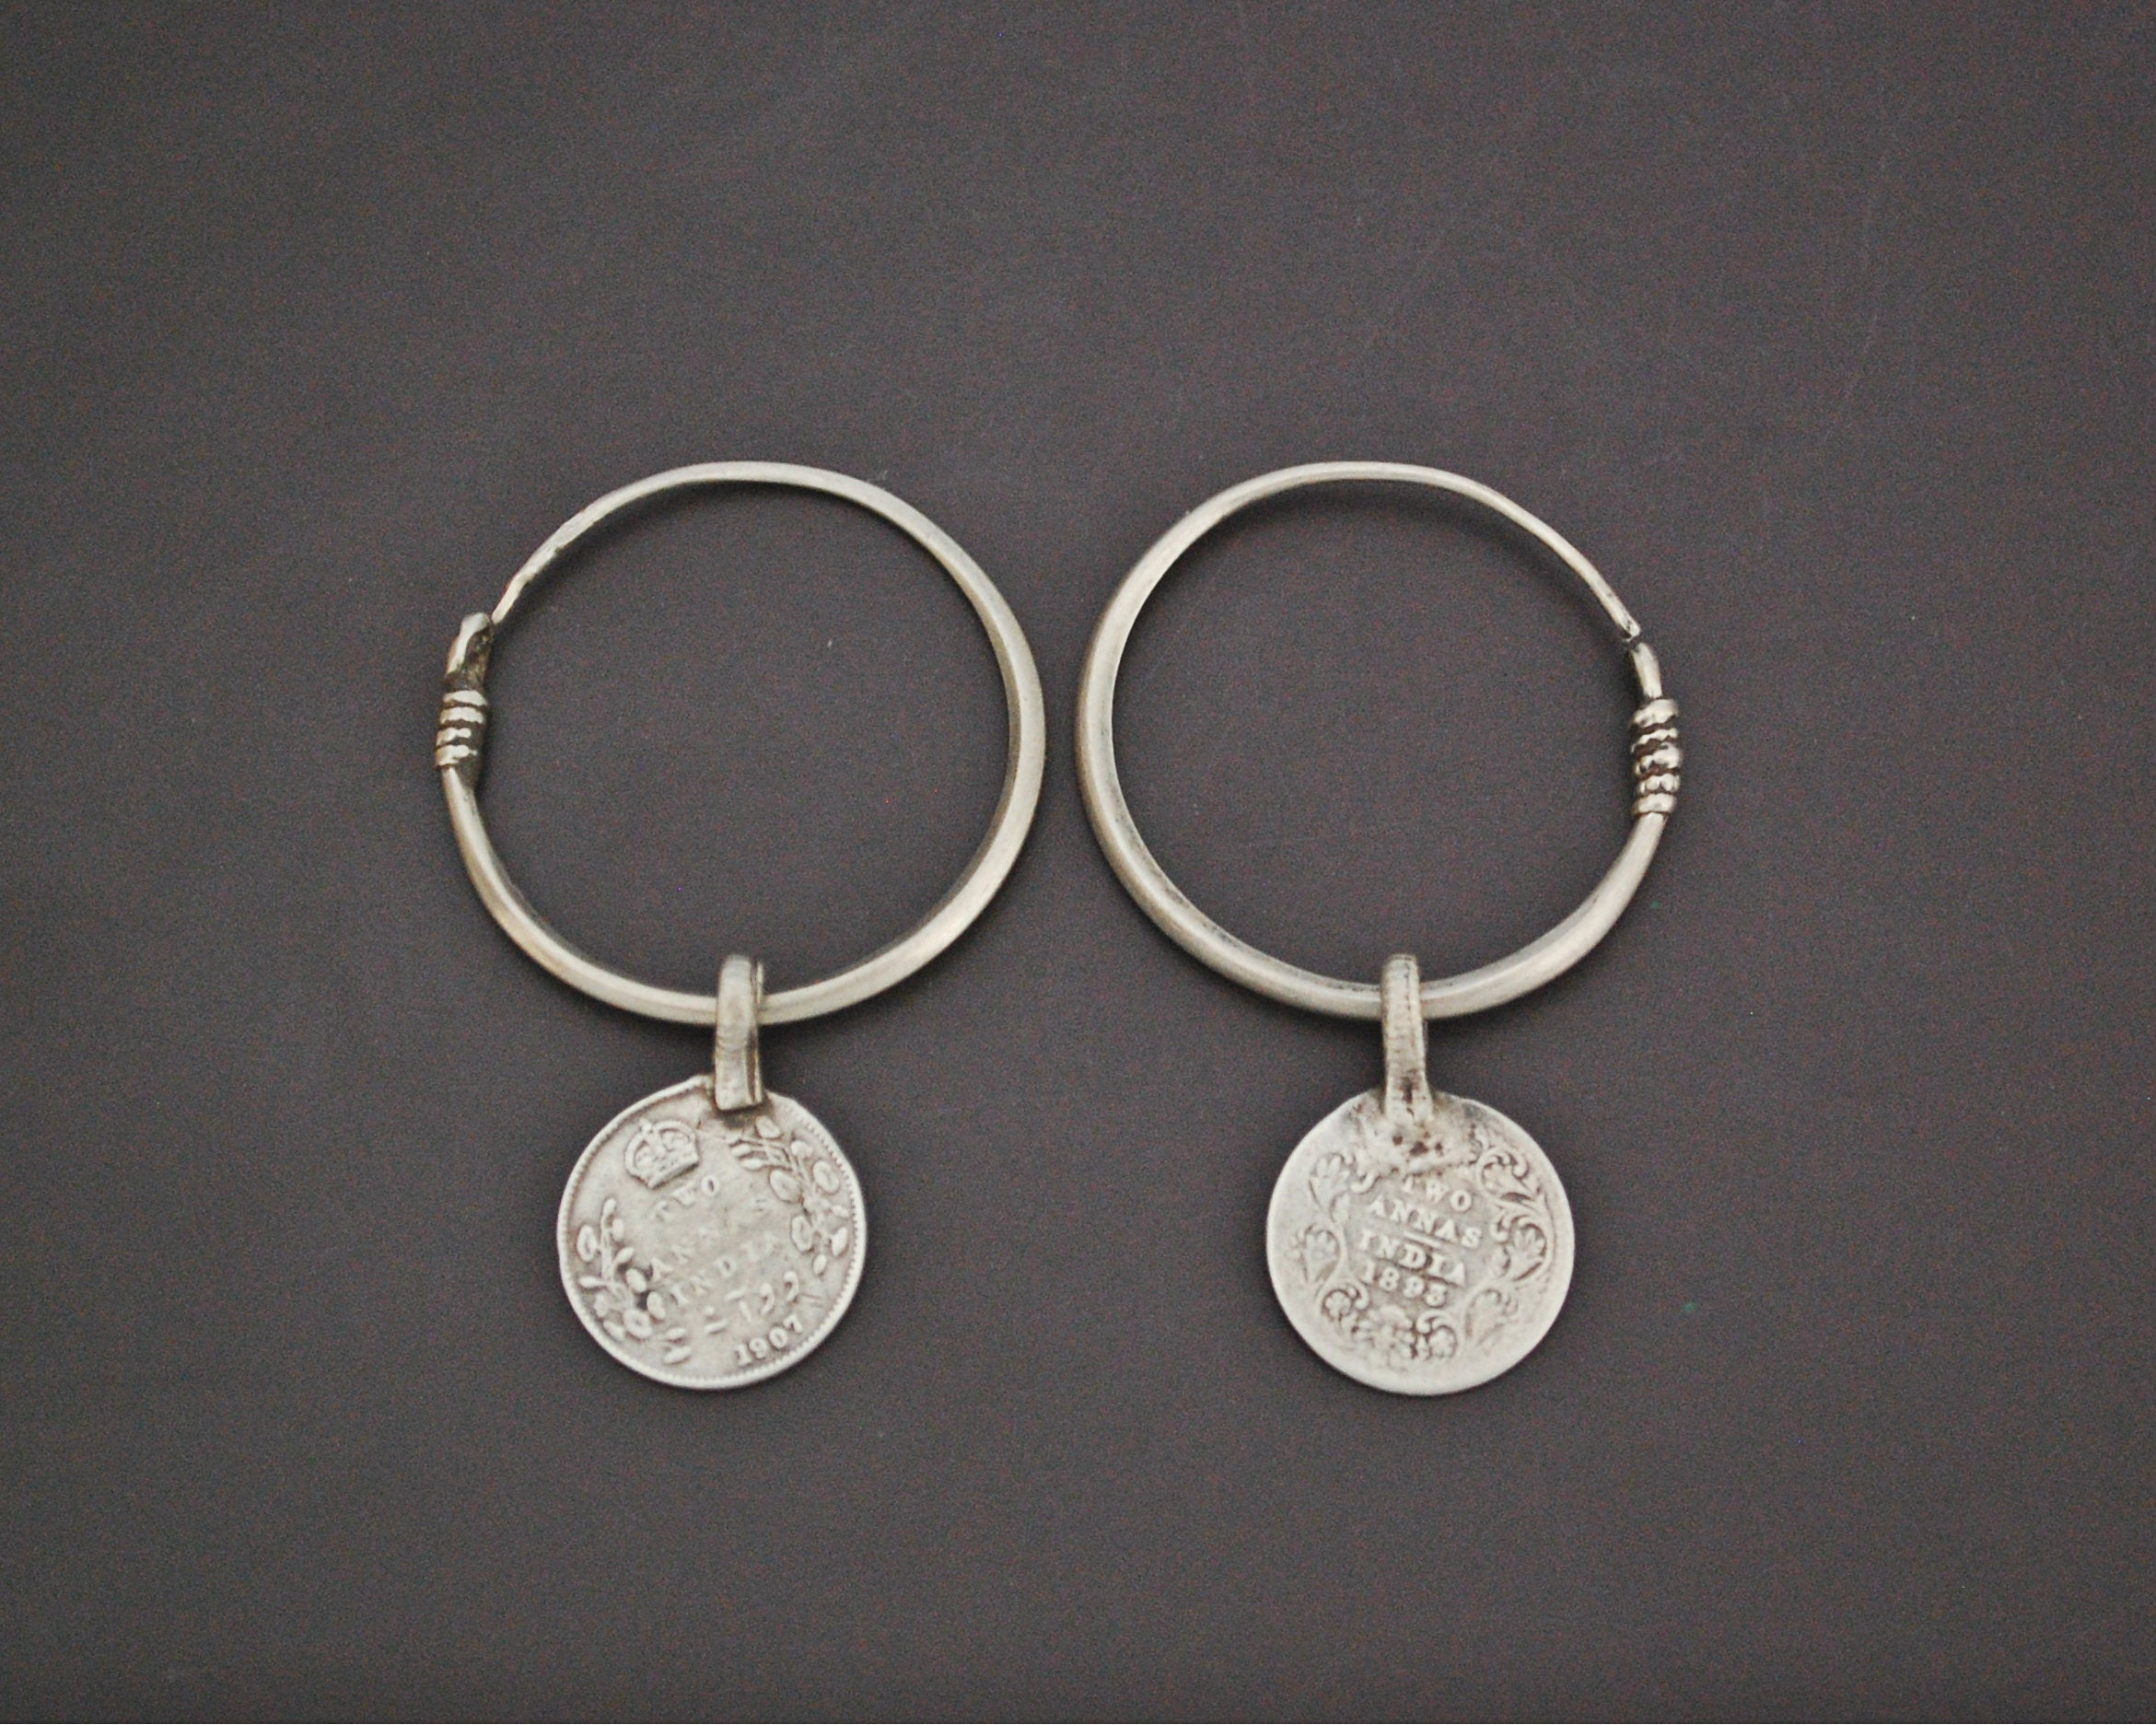 Tribal Indian Hoop Earrings with Coins - MEDIUM